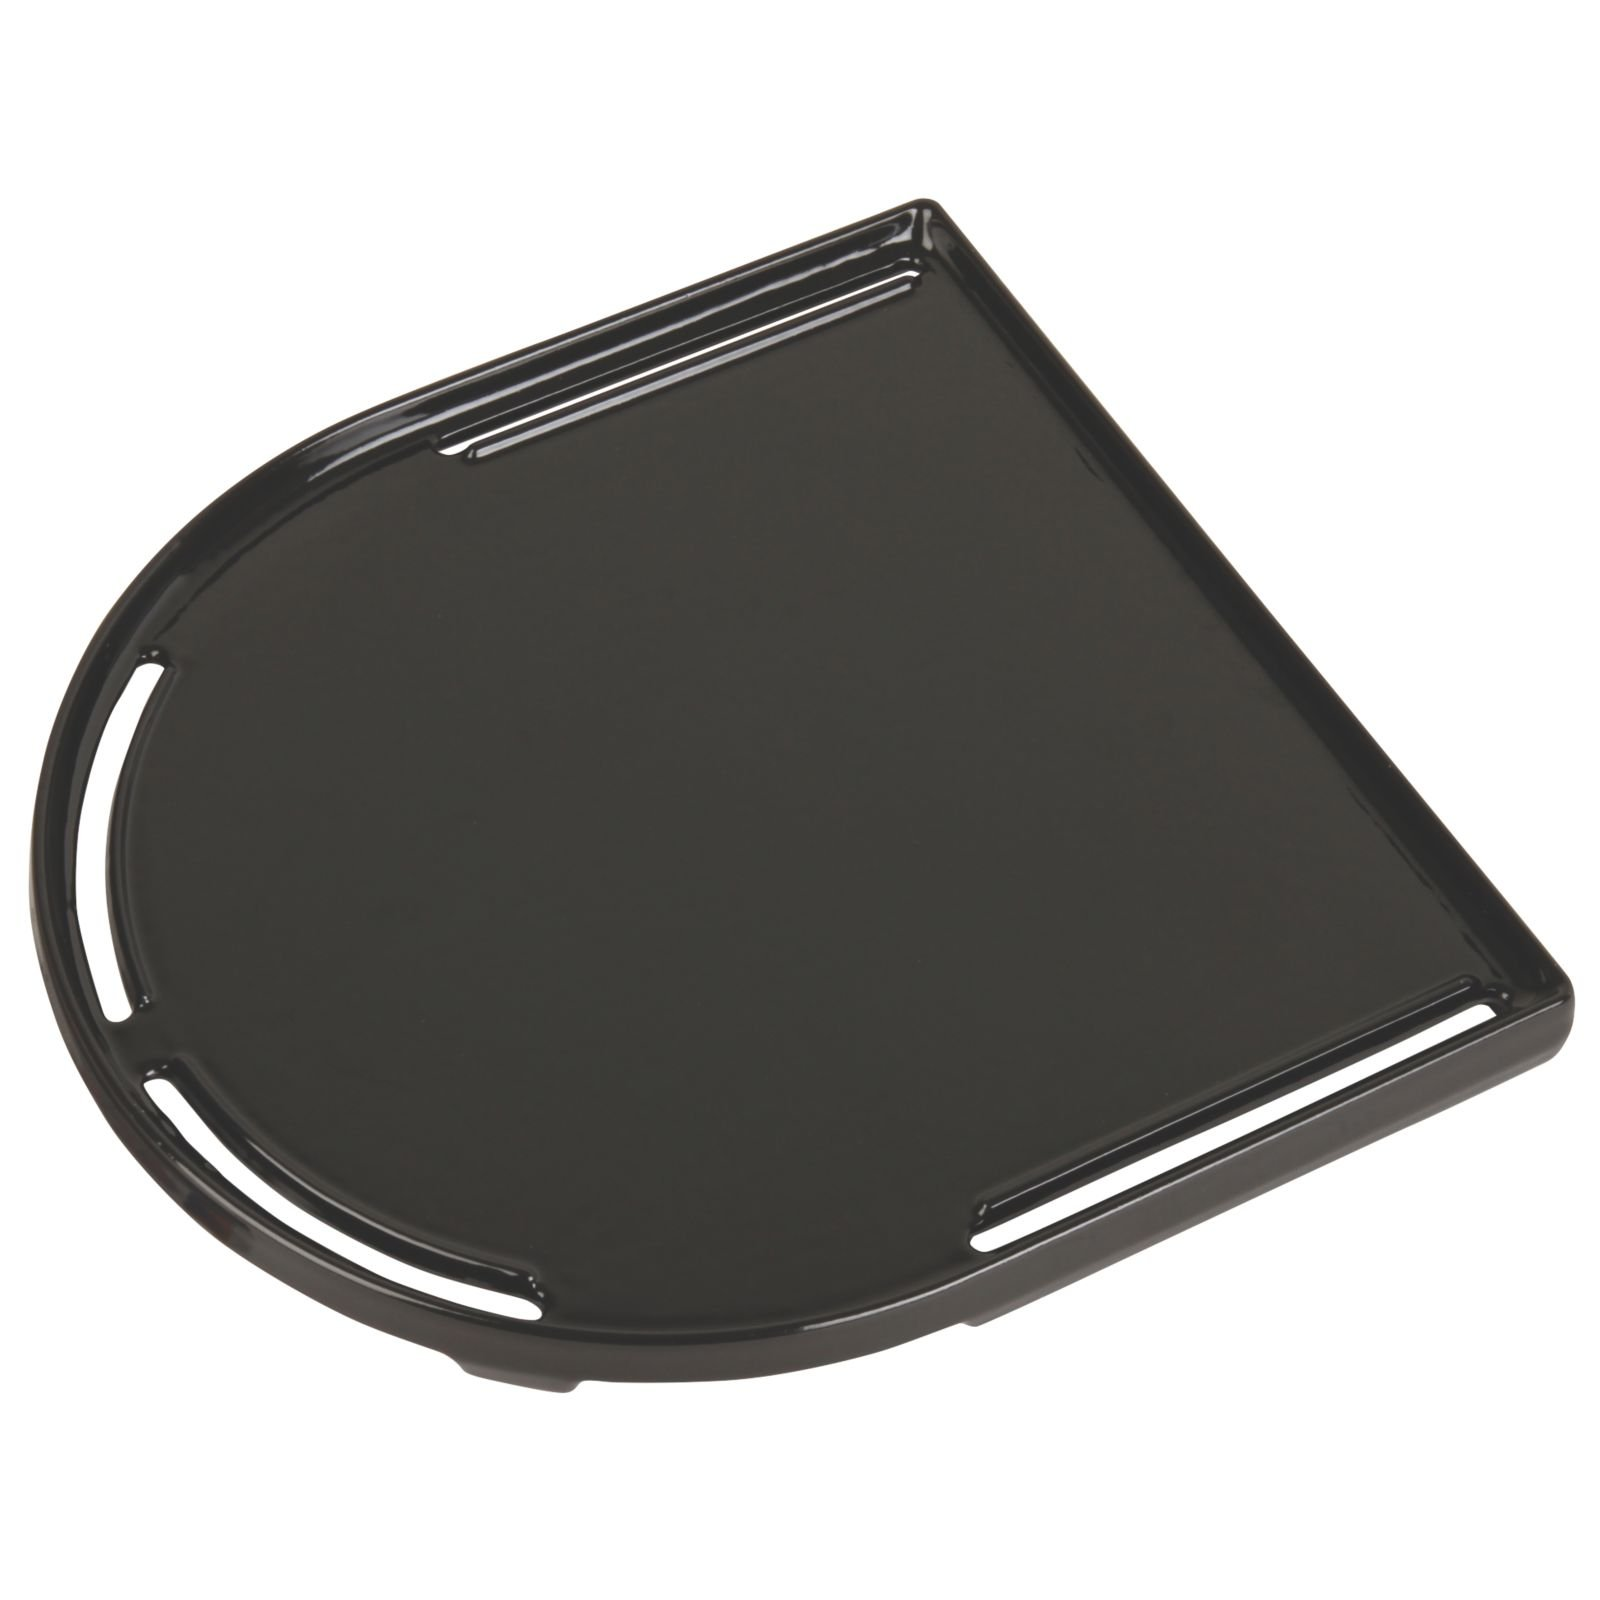 Coleman RoadTrip Swaptop Cast Iron Griddle by Coleman